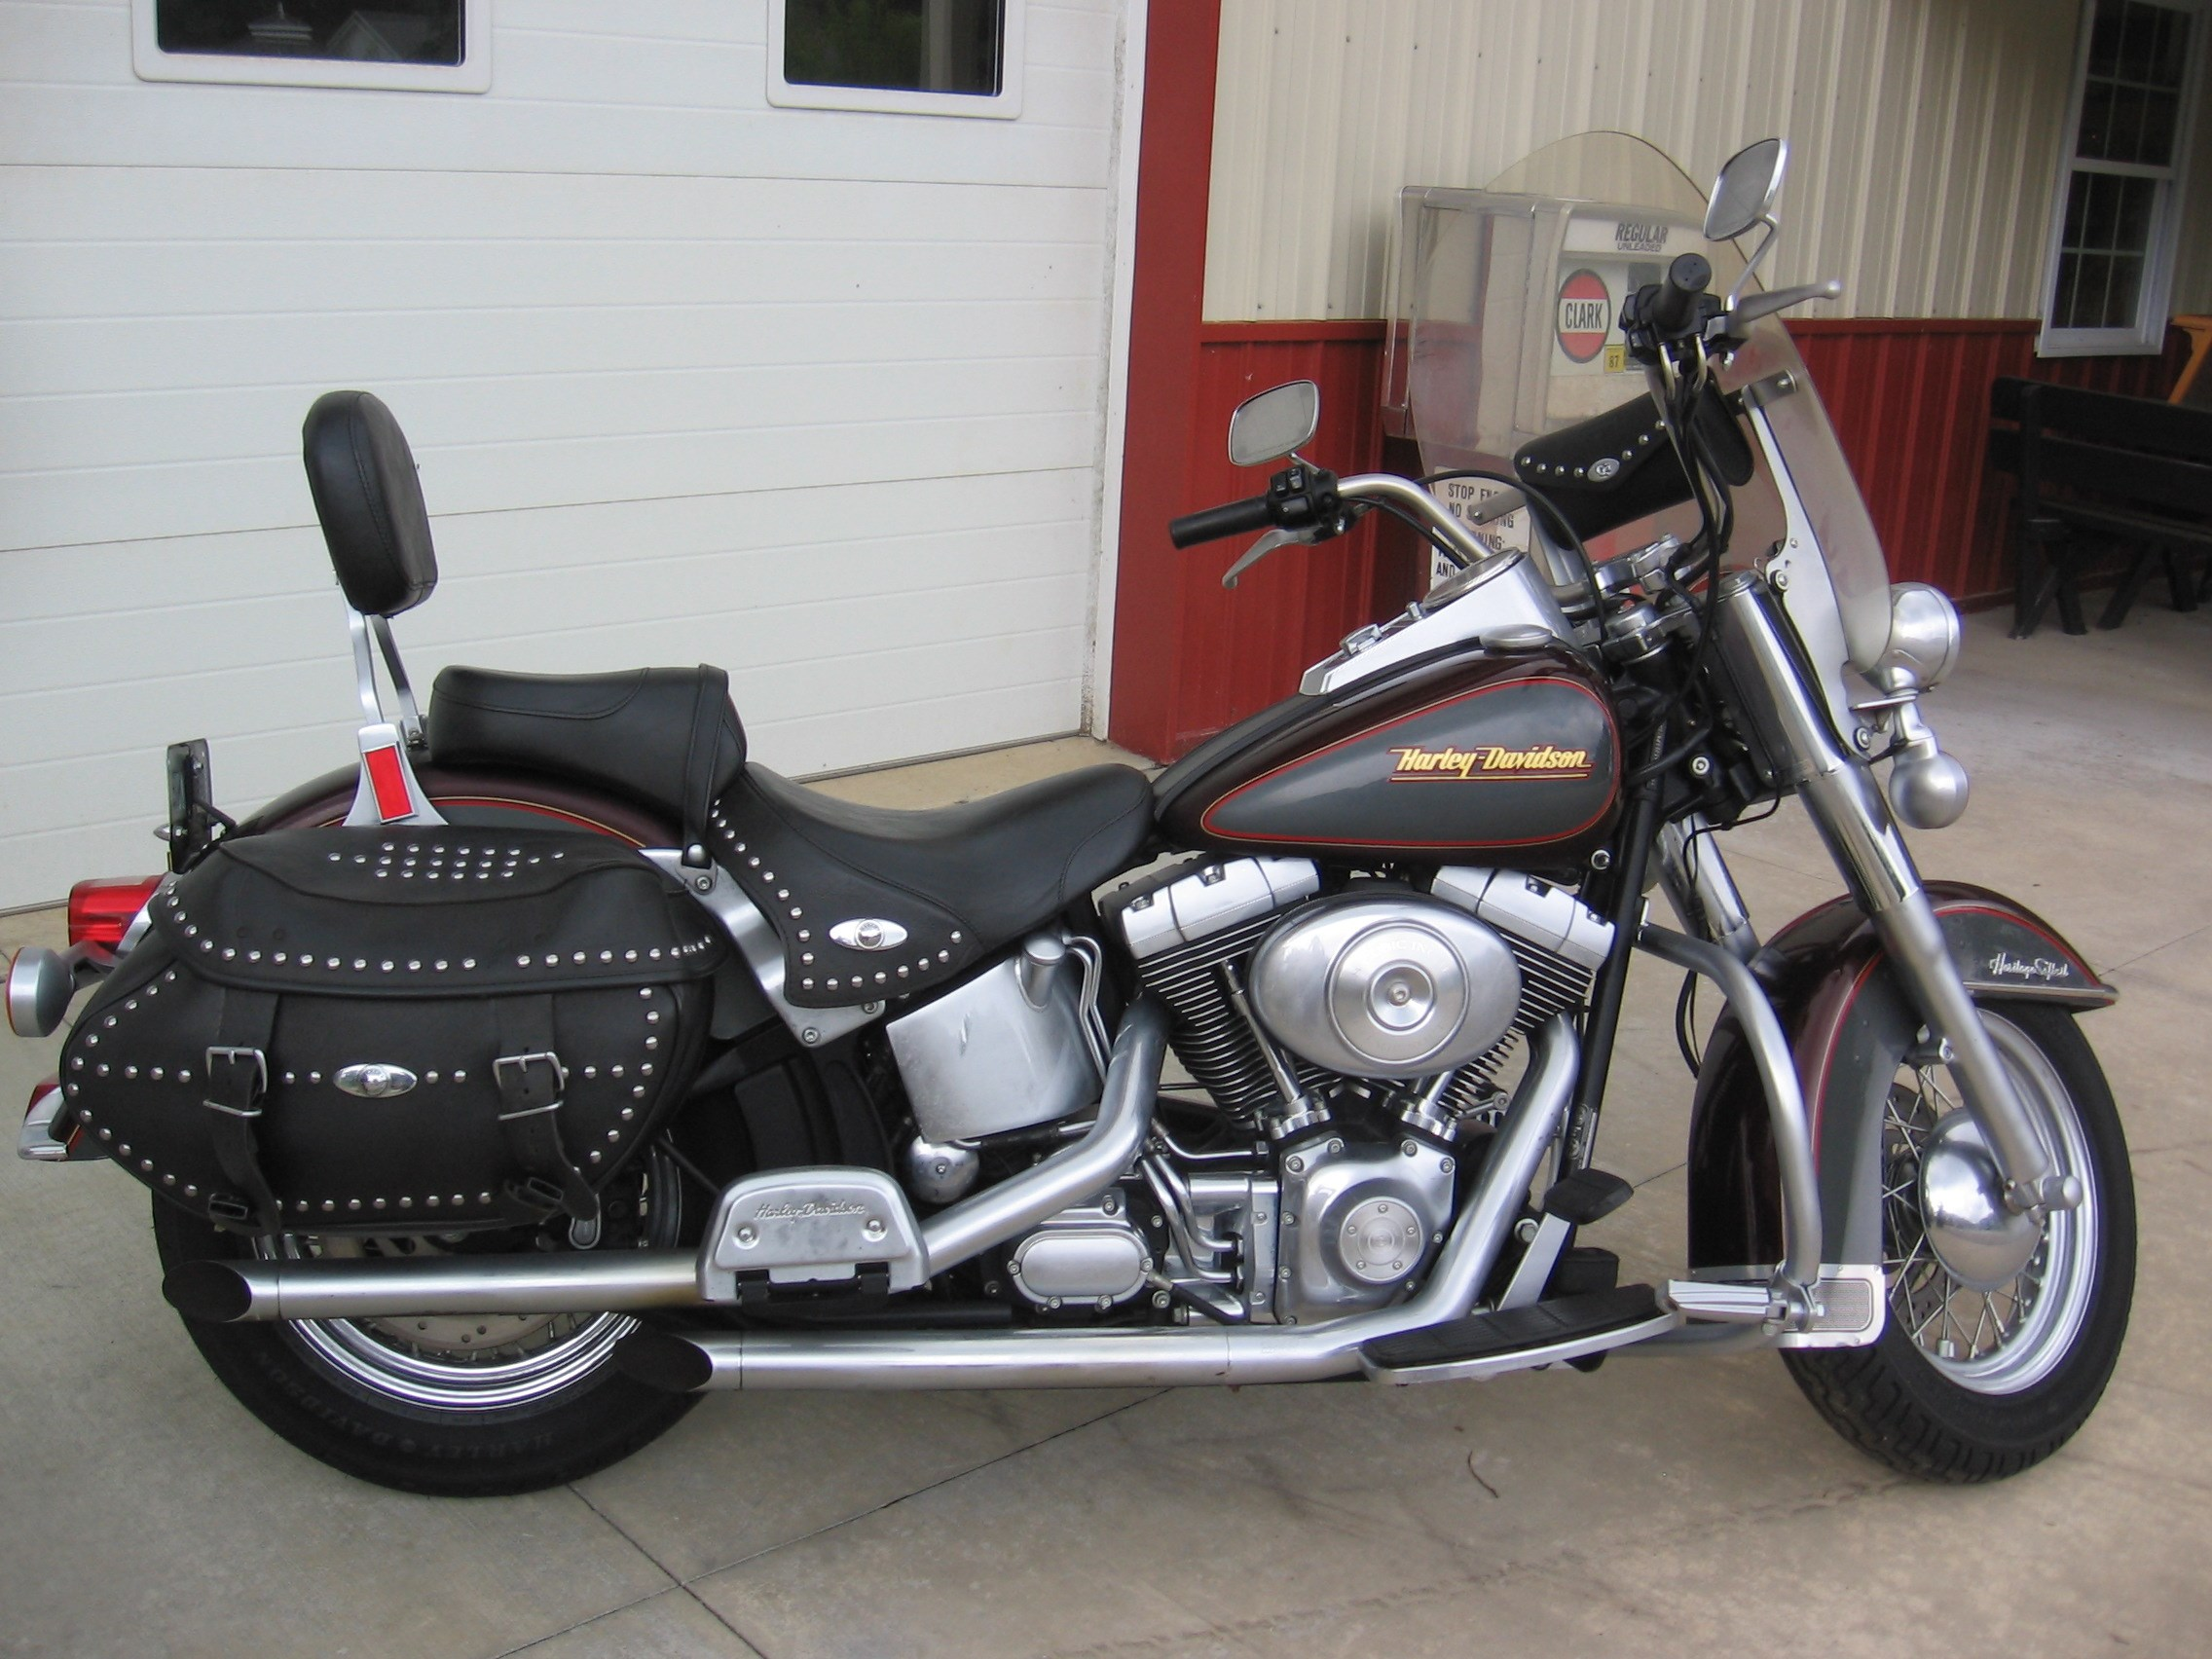 2018 Harley Davidson Motorcycles For Sale Texas >> All New & Used Harley-Davidson® Heritage Softail® For Sale (1,589 Bikes, Page 1) | ChopperExchange